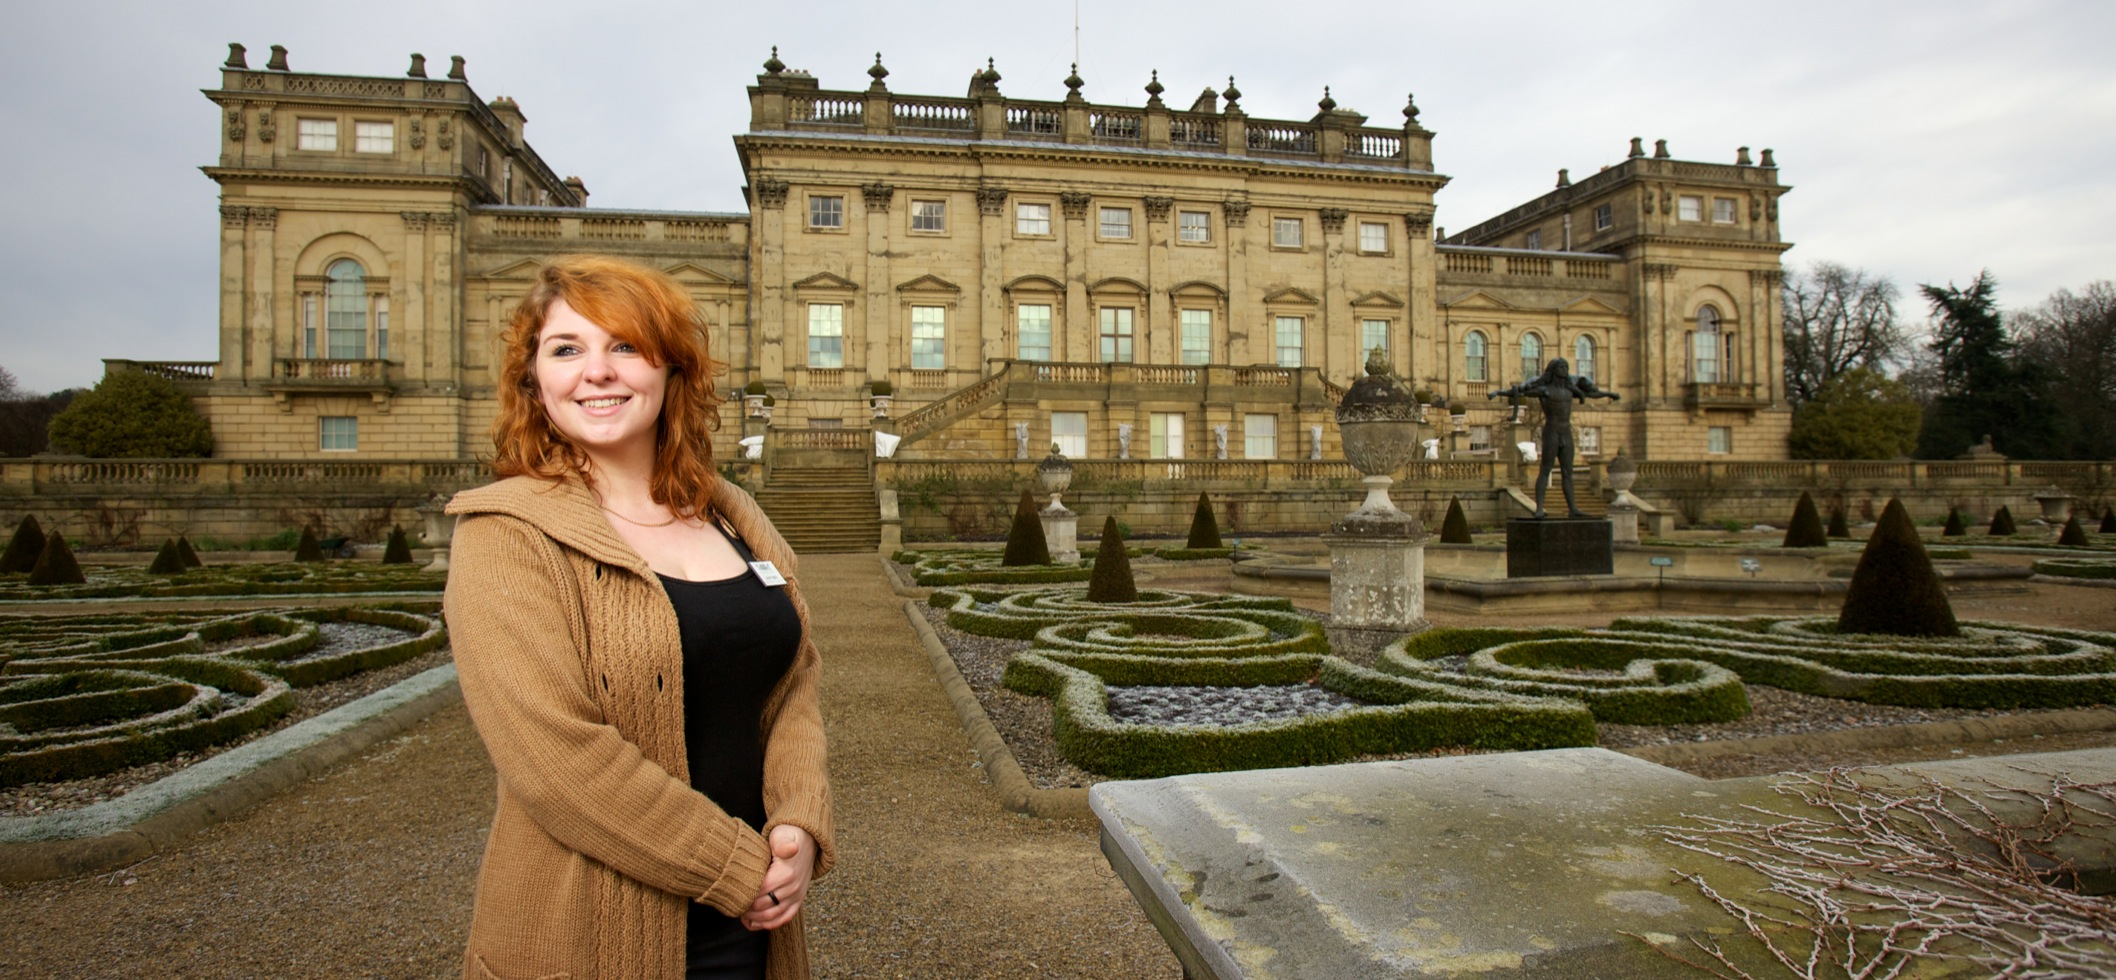 A student on placement in Harewood House